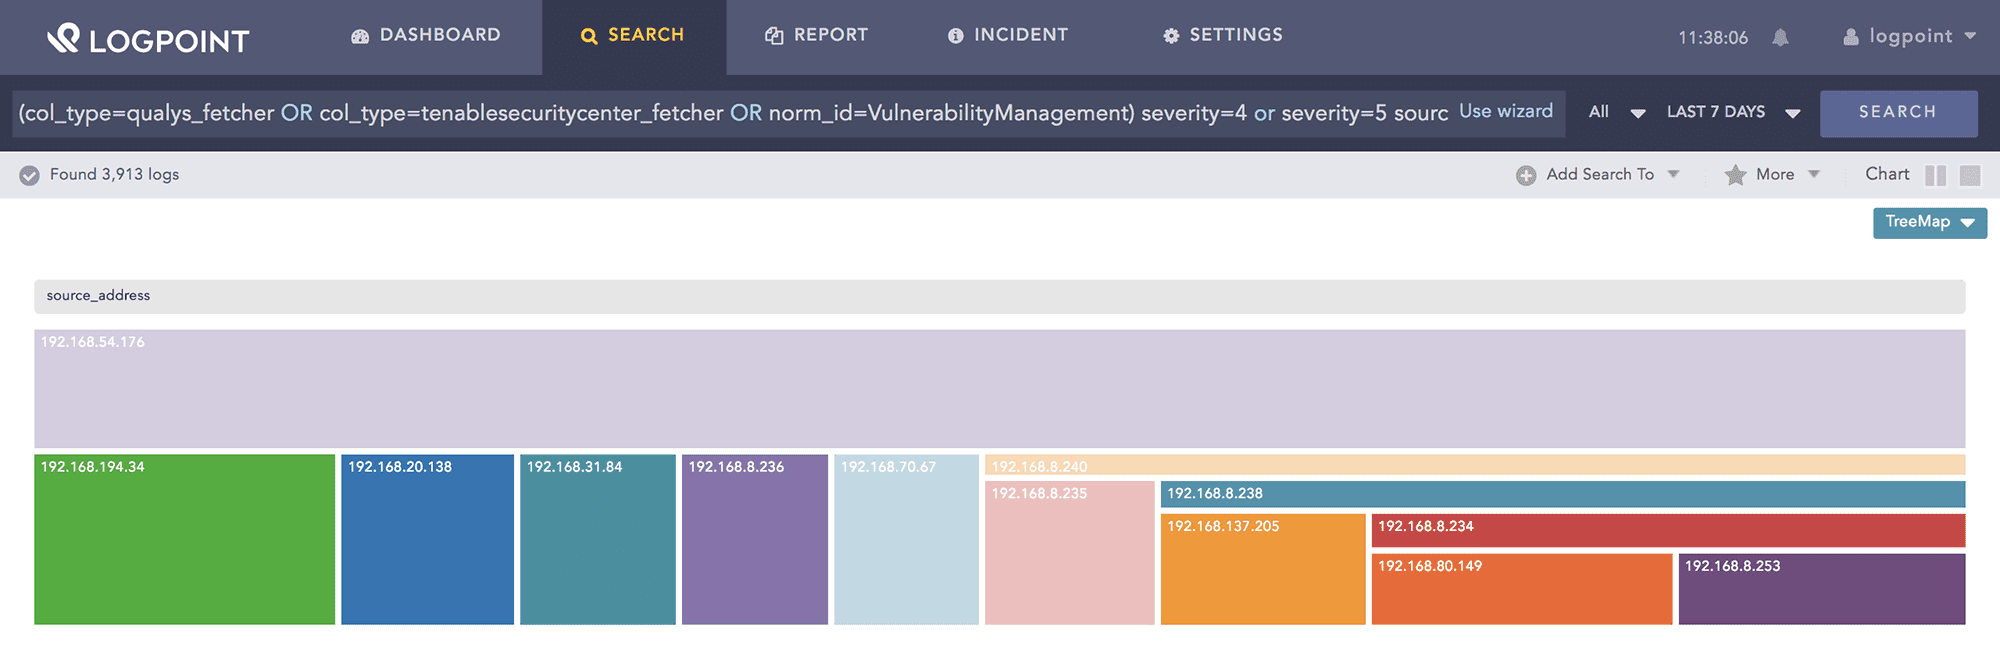 LogPoint SIEM Dashboard Identification of Vulnerable Sources